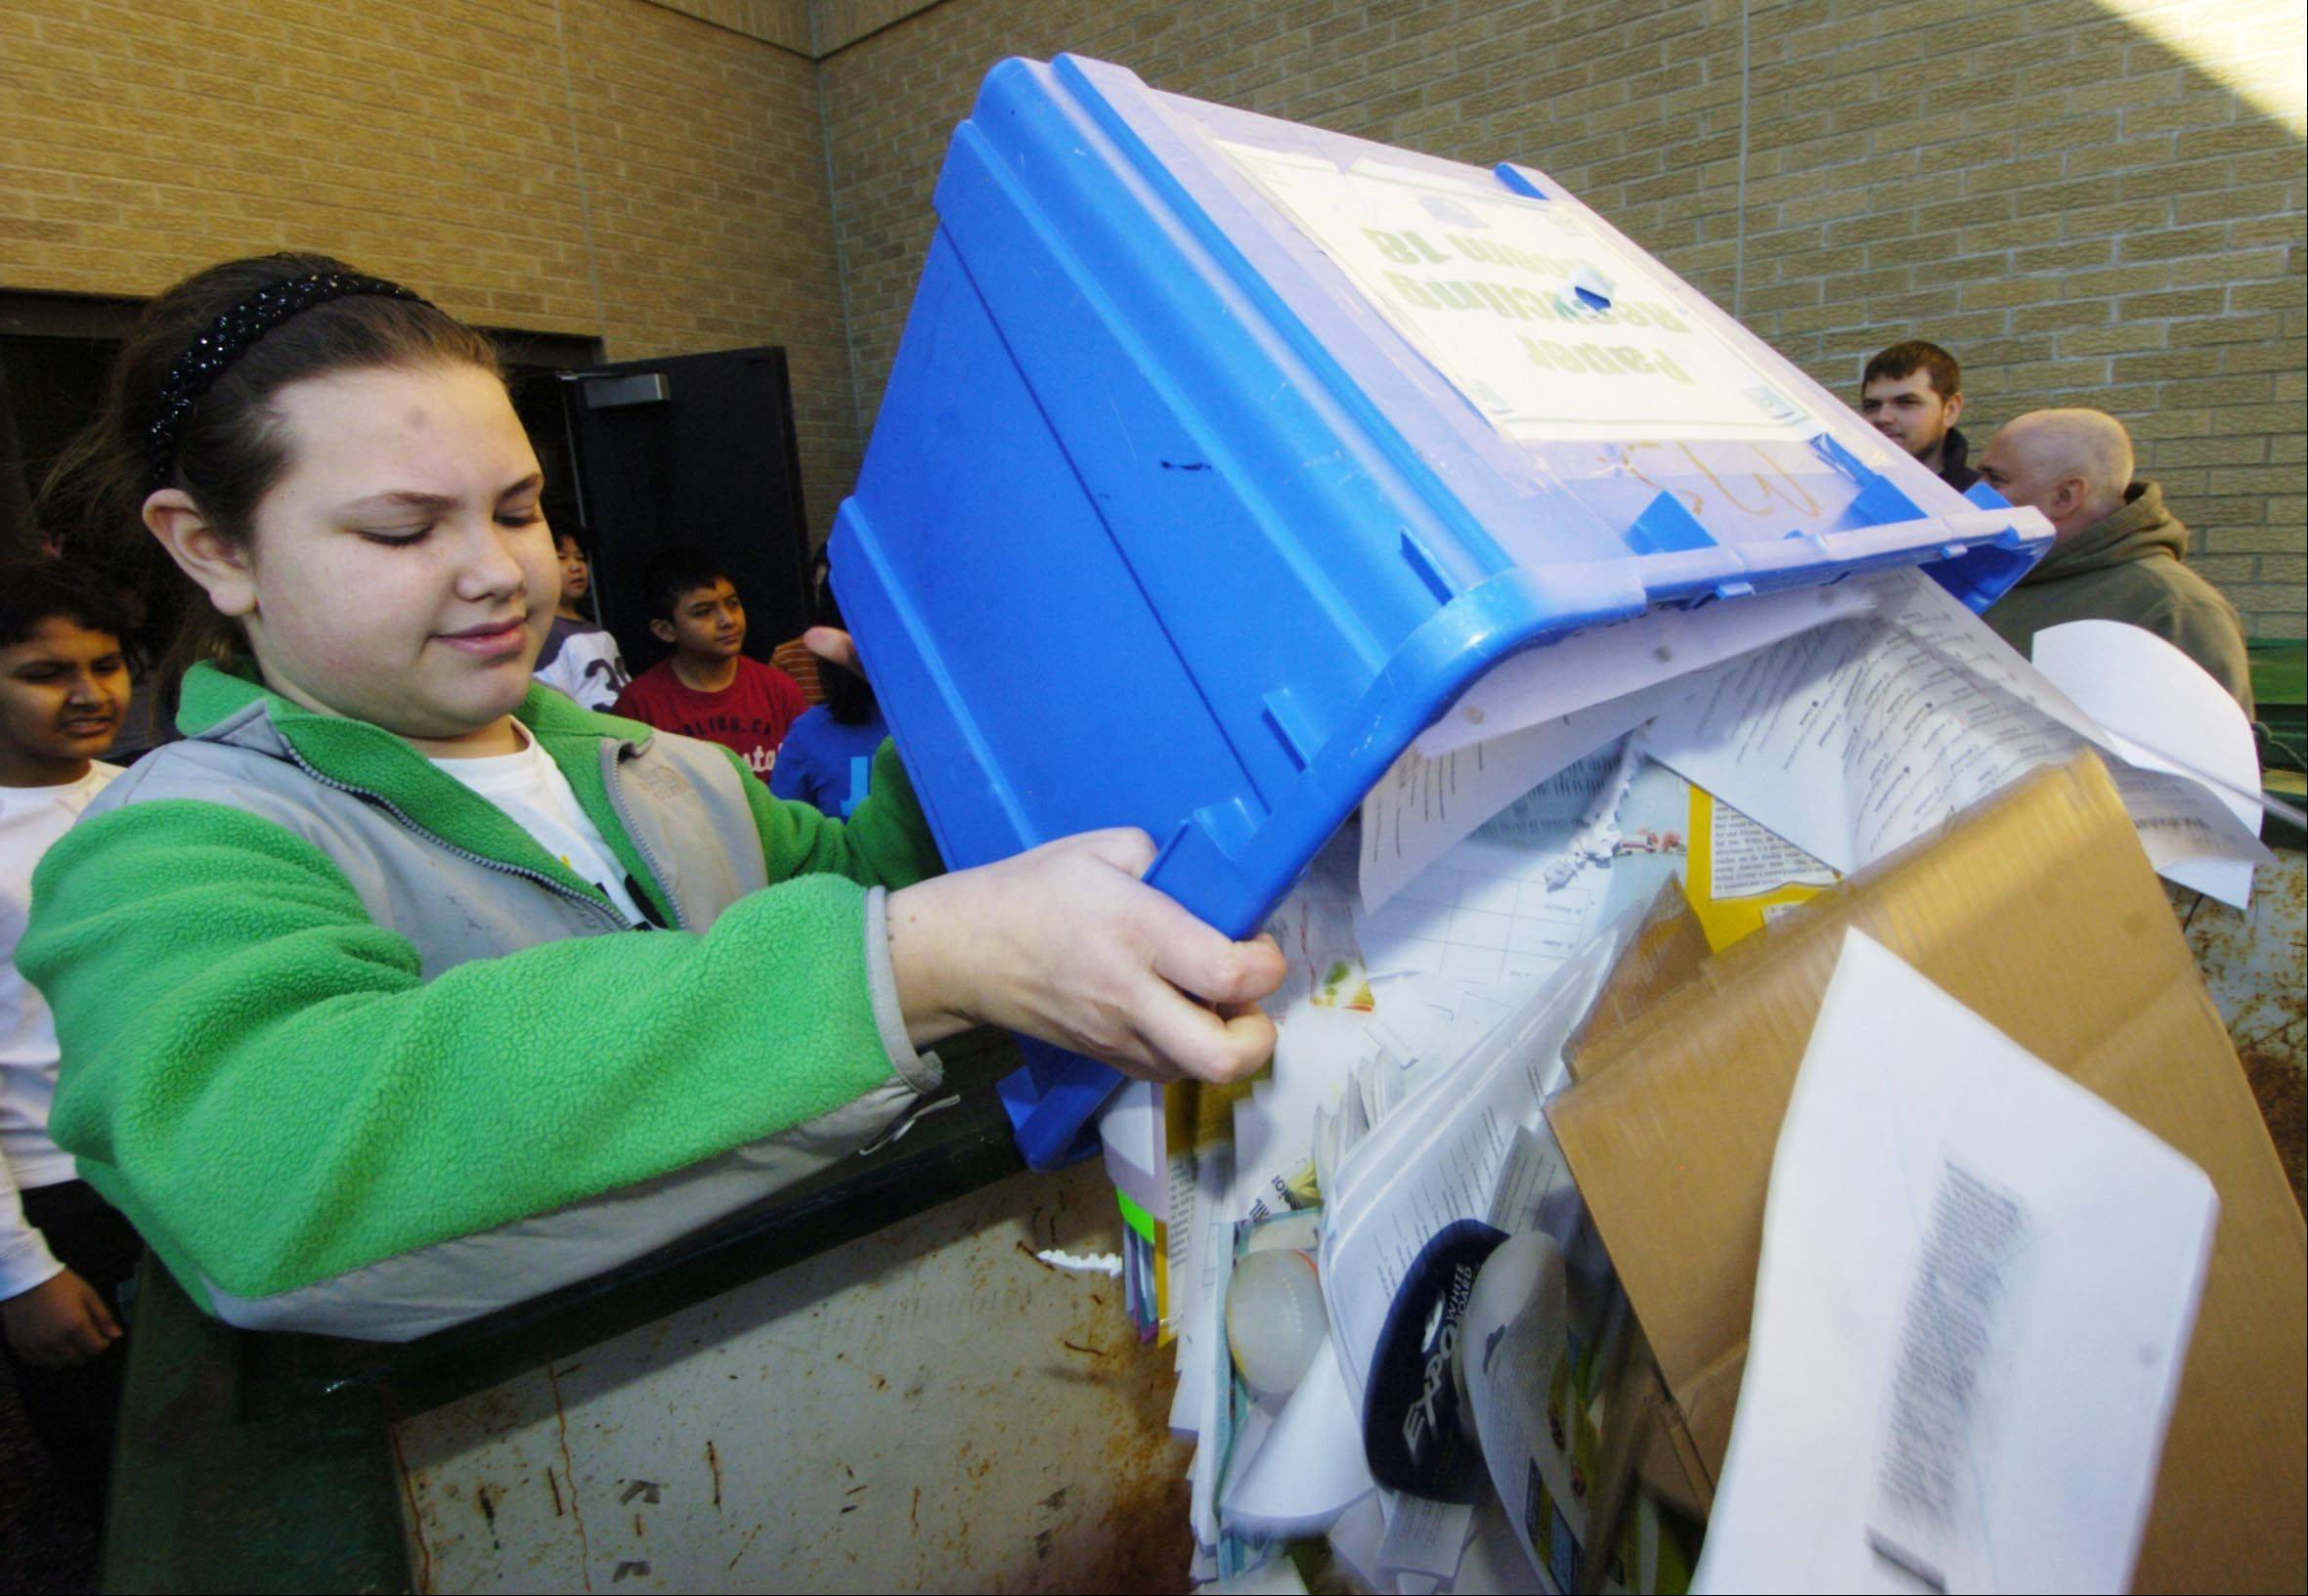 Michelle Anderson unloads a recycling bin from a classroom at Field Middle School in Northbrook.